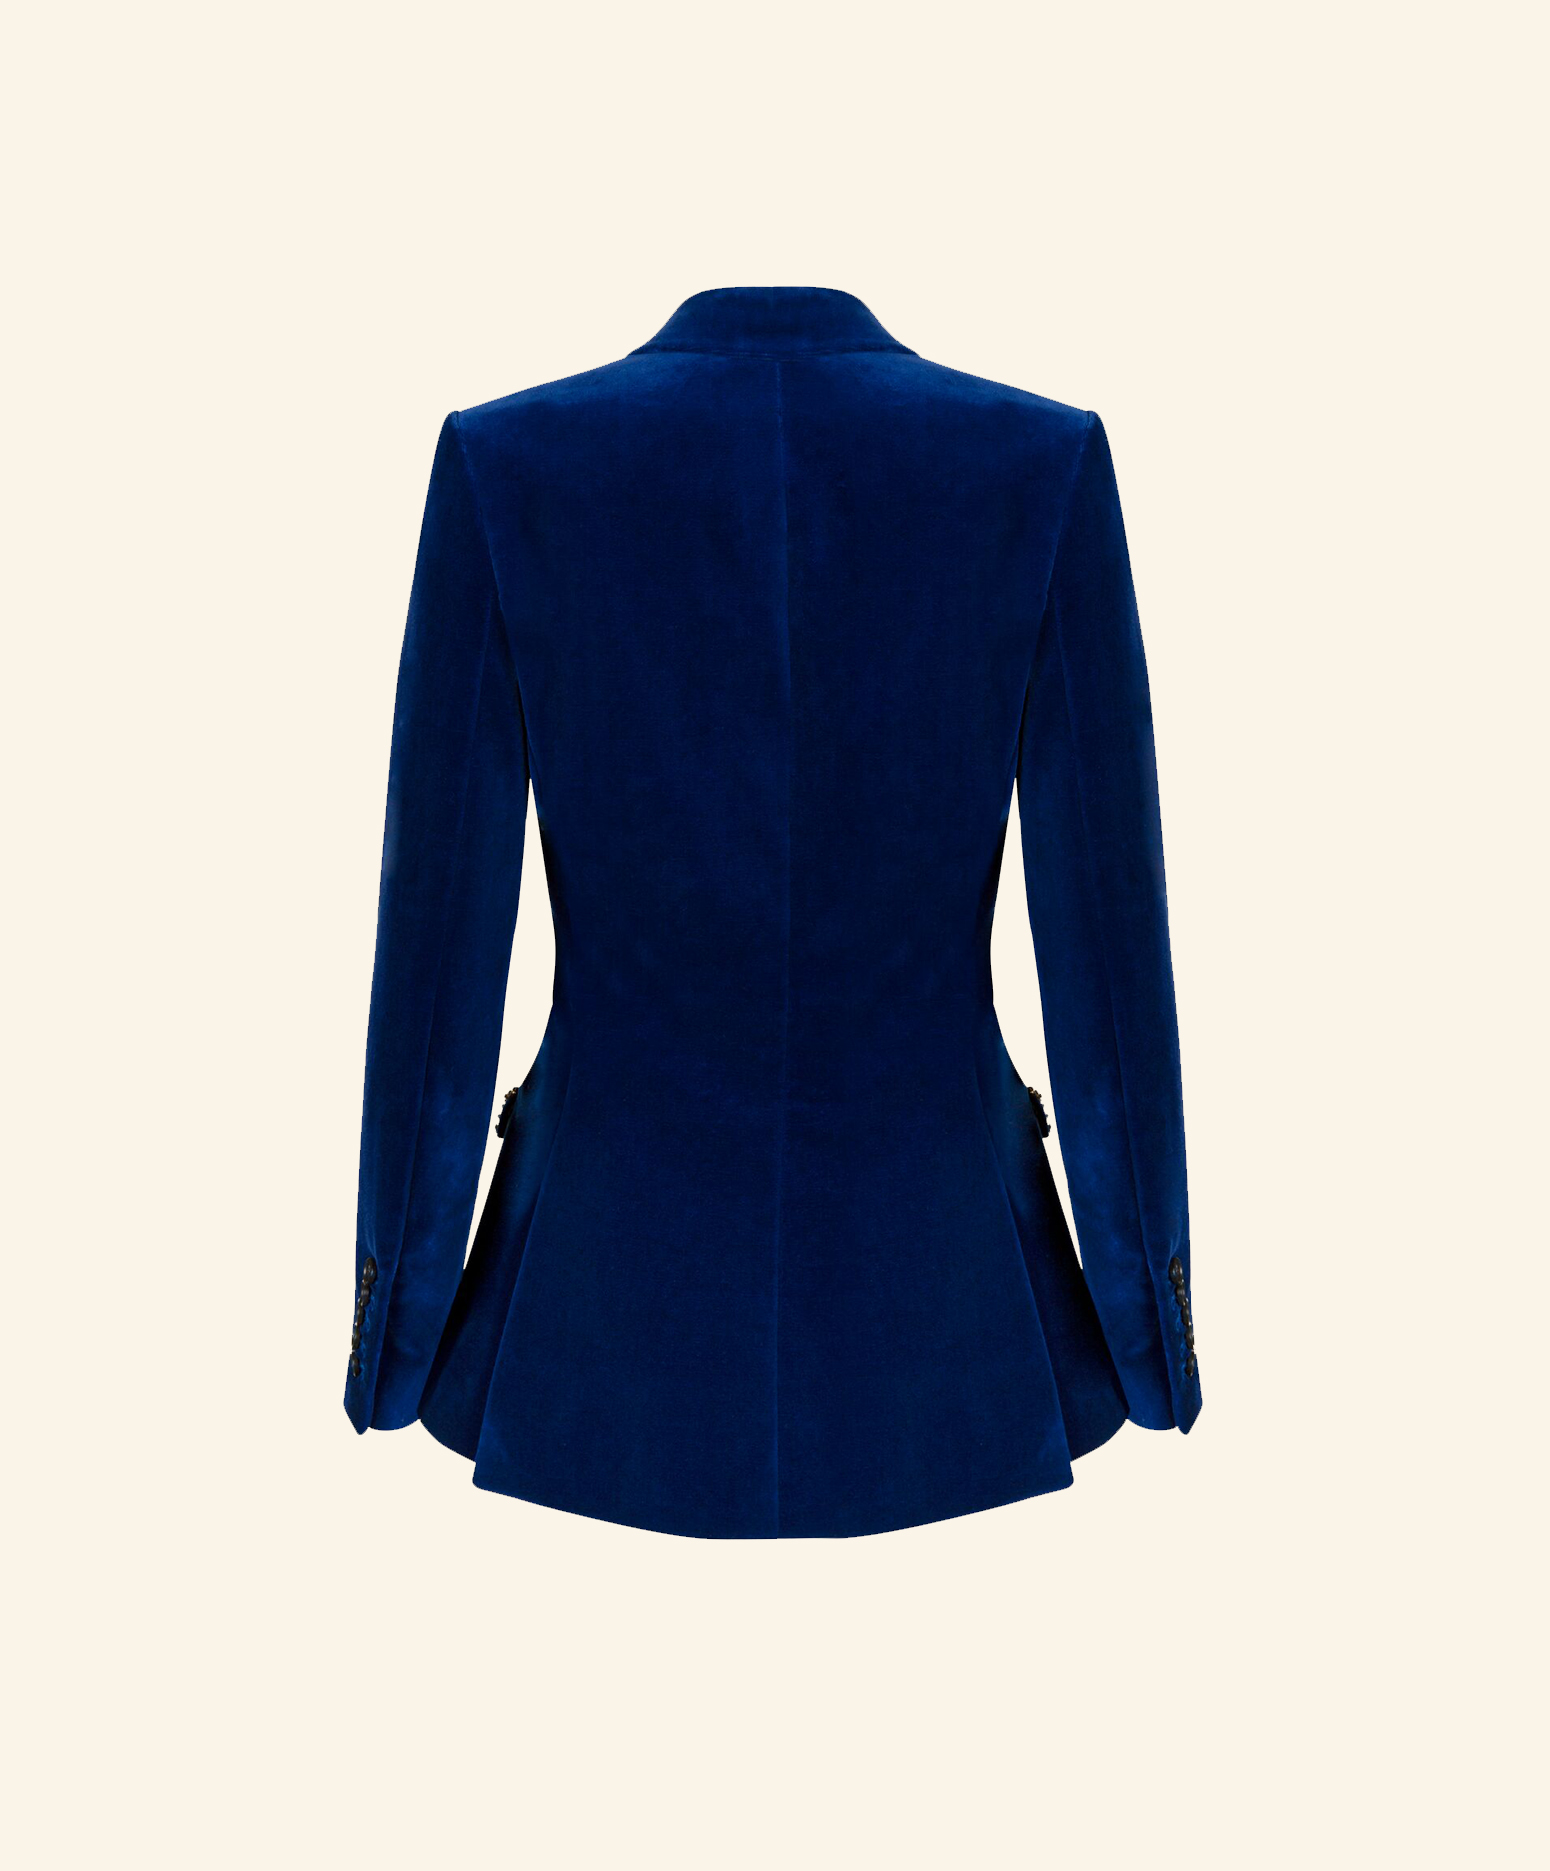 https://www.sannelondon.com/wp-content/uploads/2019/07/velvet-crystal-jacket-back.jpg